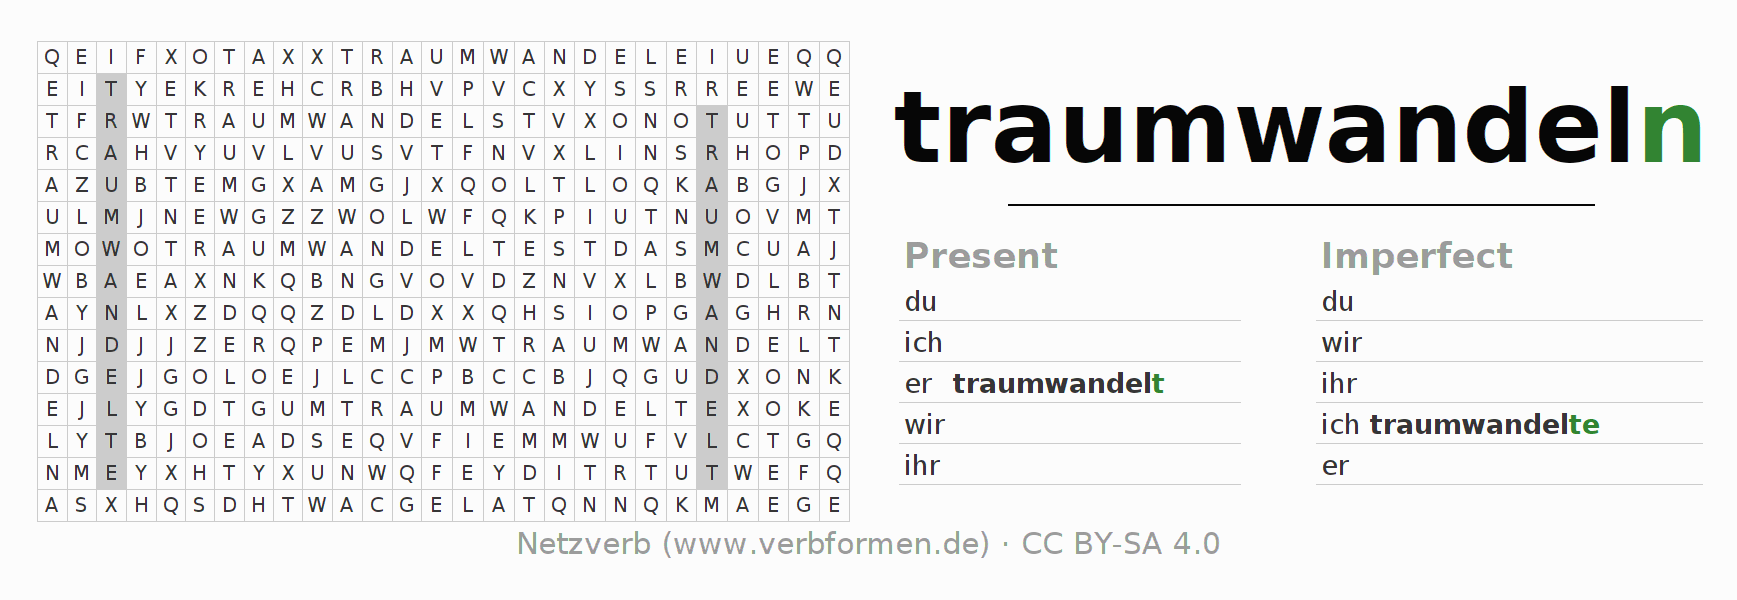 Word search puzzle for the conjugation of the verb traumwandeln (ist)